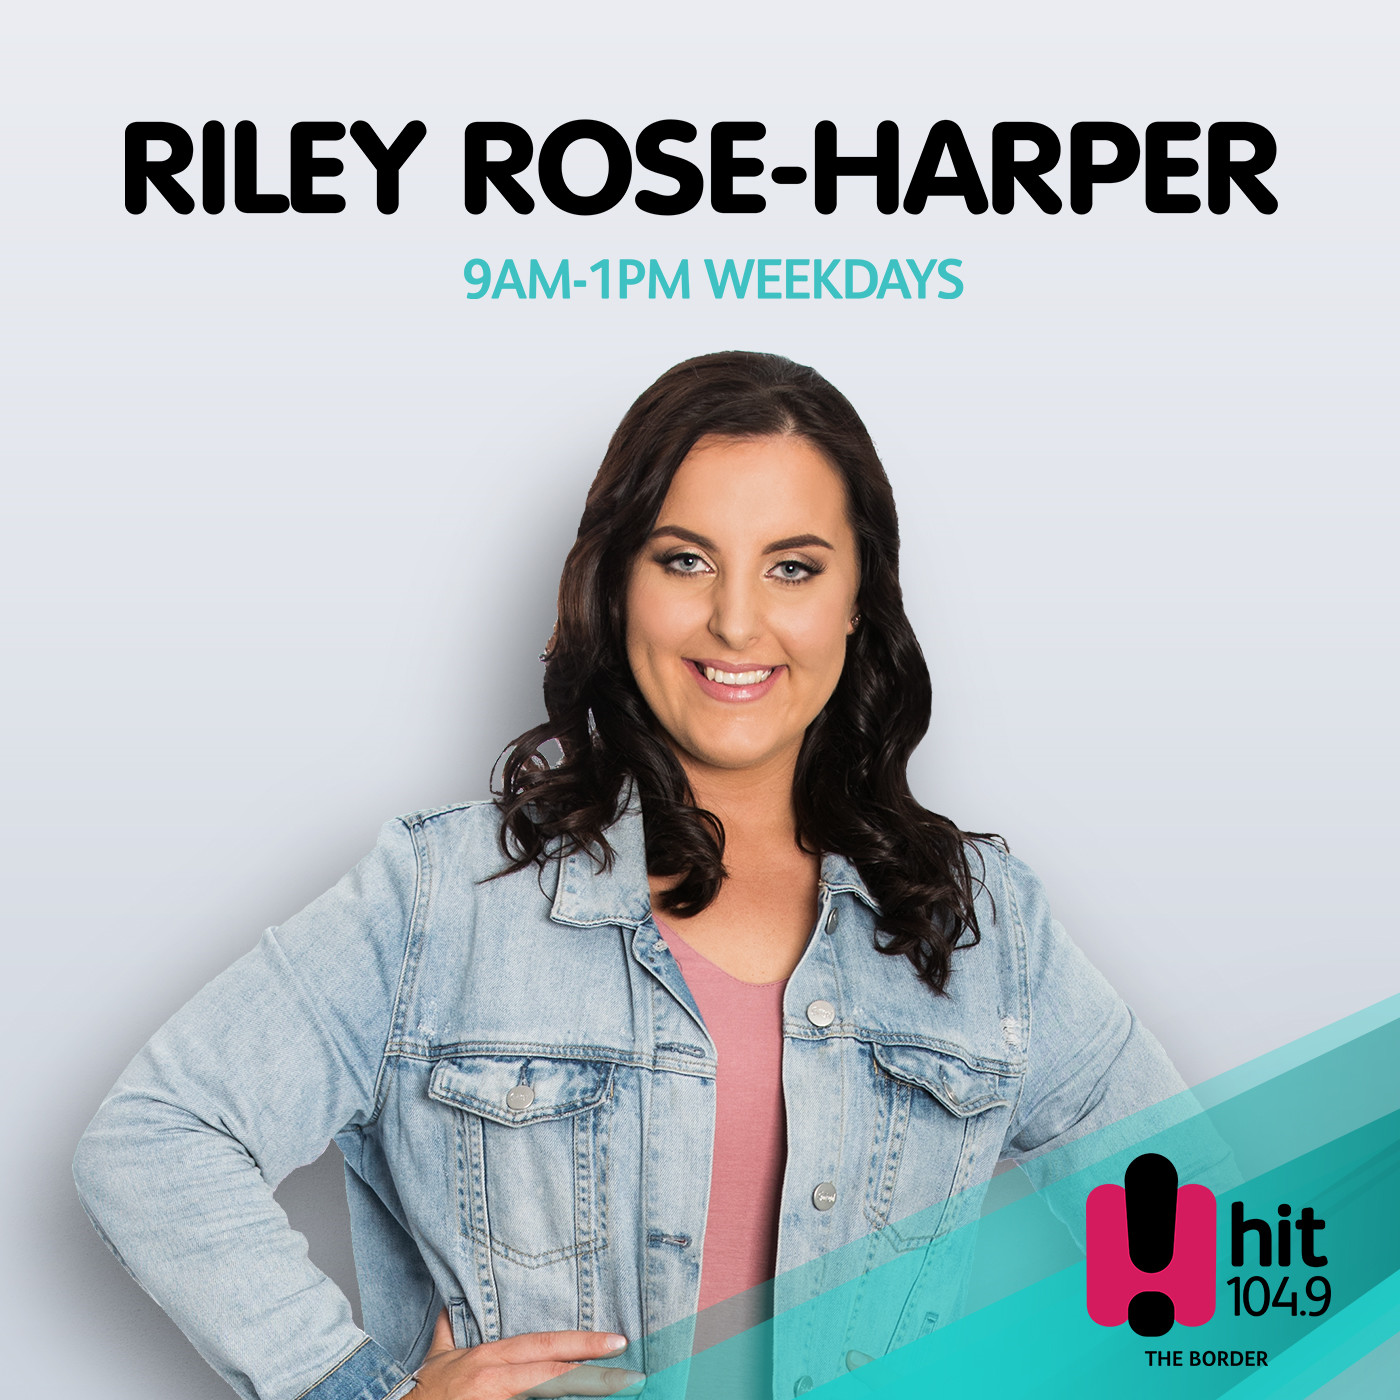 Harpin' On With Riley-Rose Harper - hit104.9 The Border